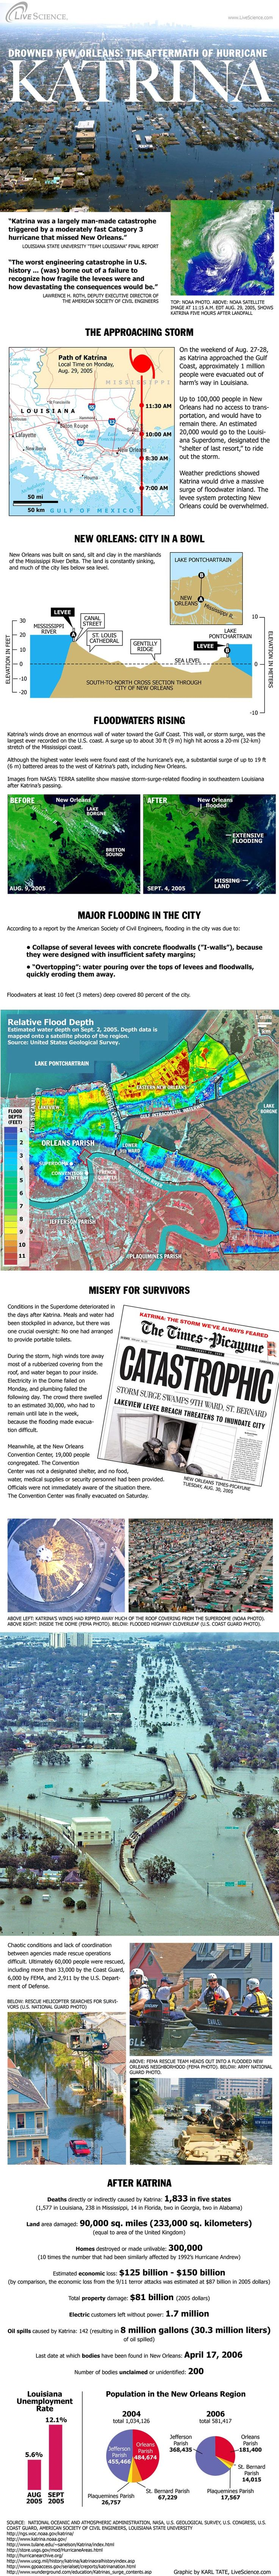 Hurricane Katrina History and Numbers Infographic 36